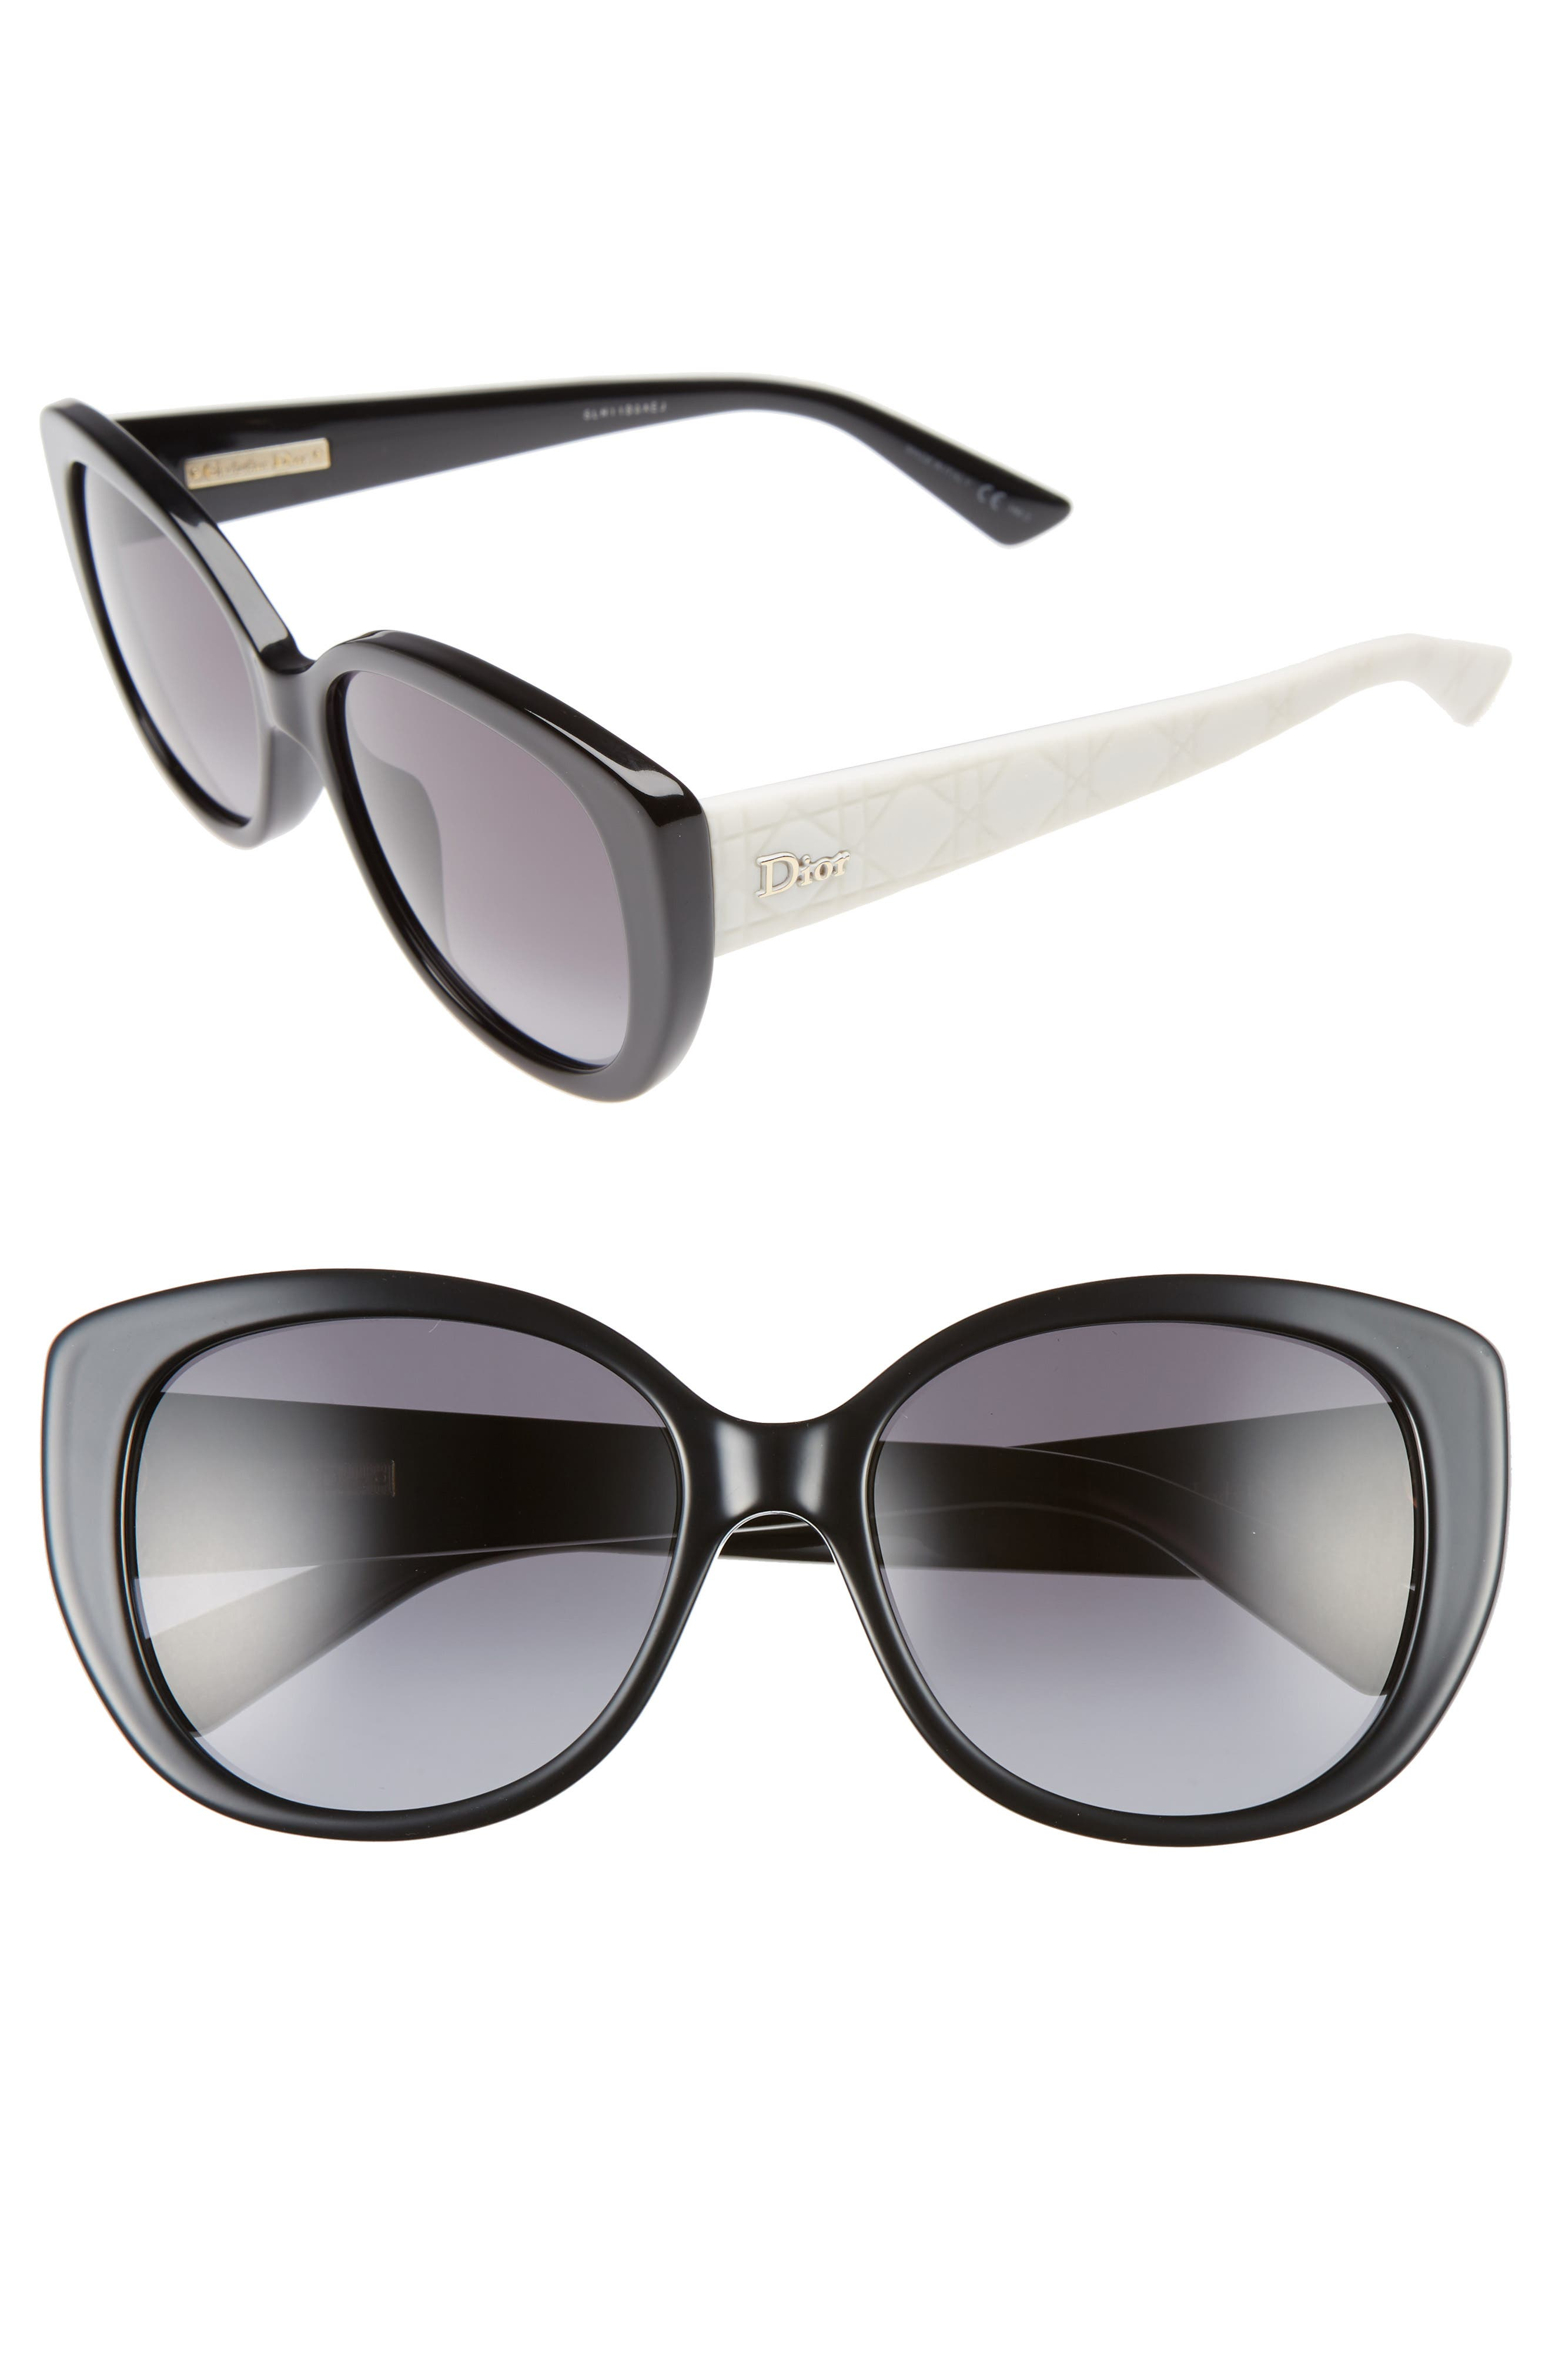 Main Image - Dior Lady 55mm Cat Eye Sunglasses